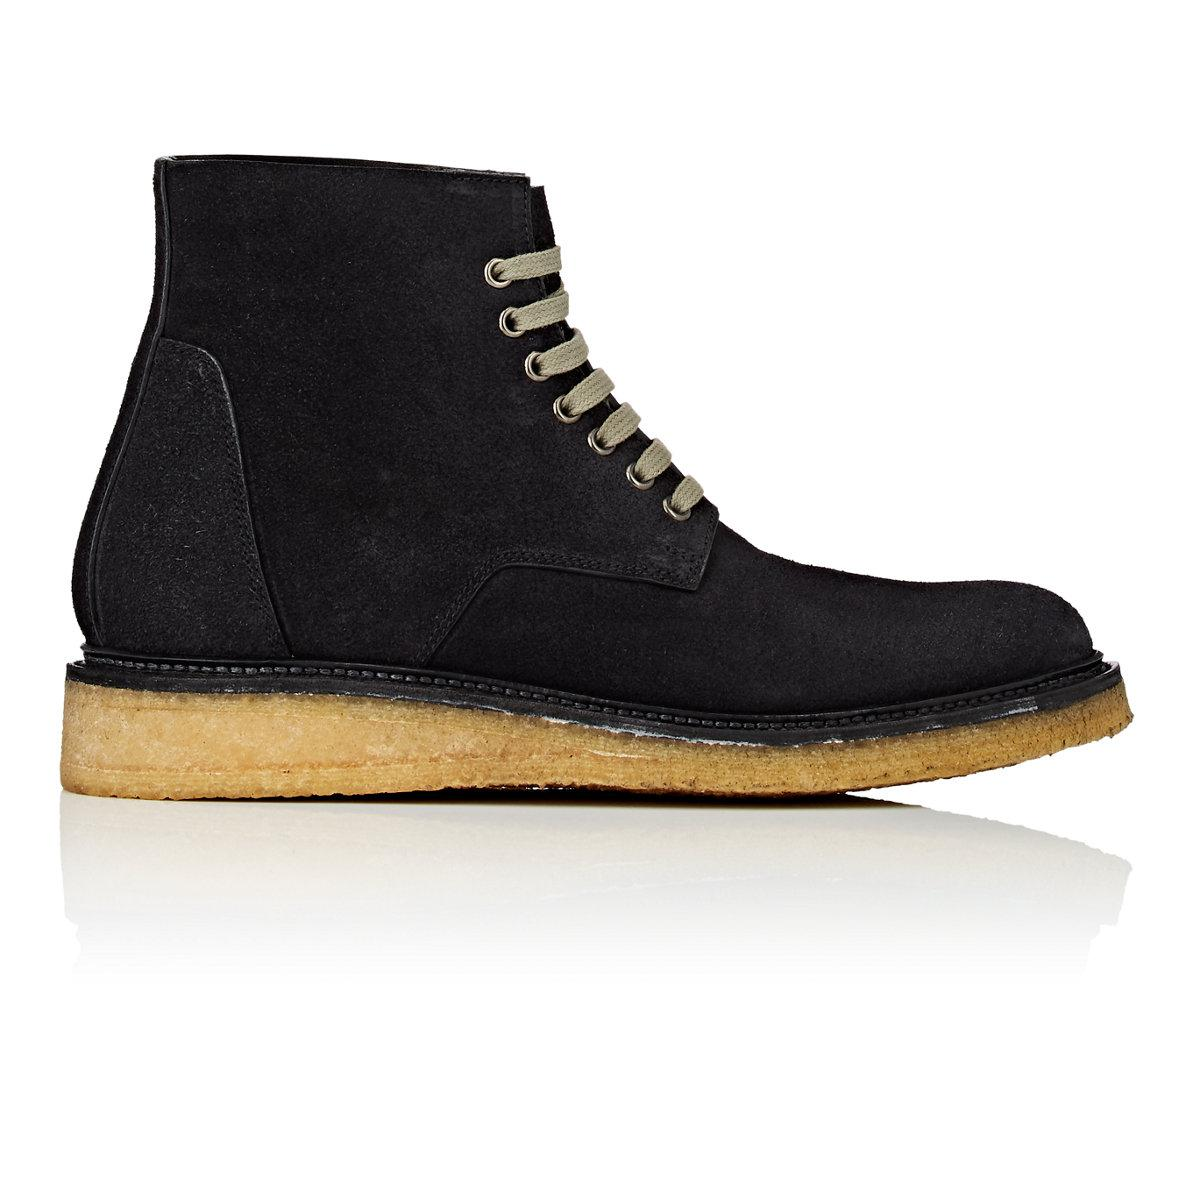 Mens Reverse Leather Hiker Boots Rick Owens Outlet For Sale 4e1DV